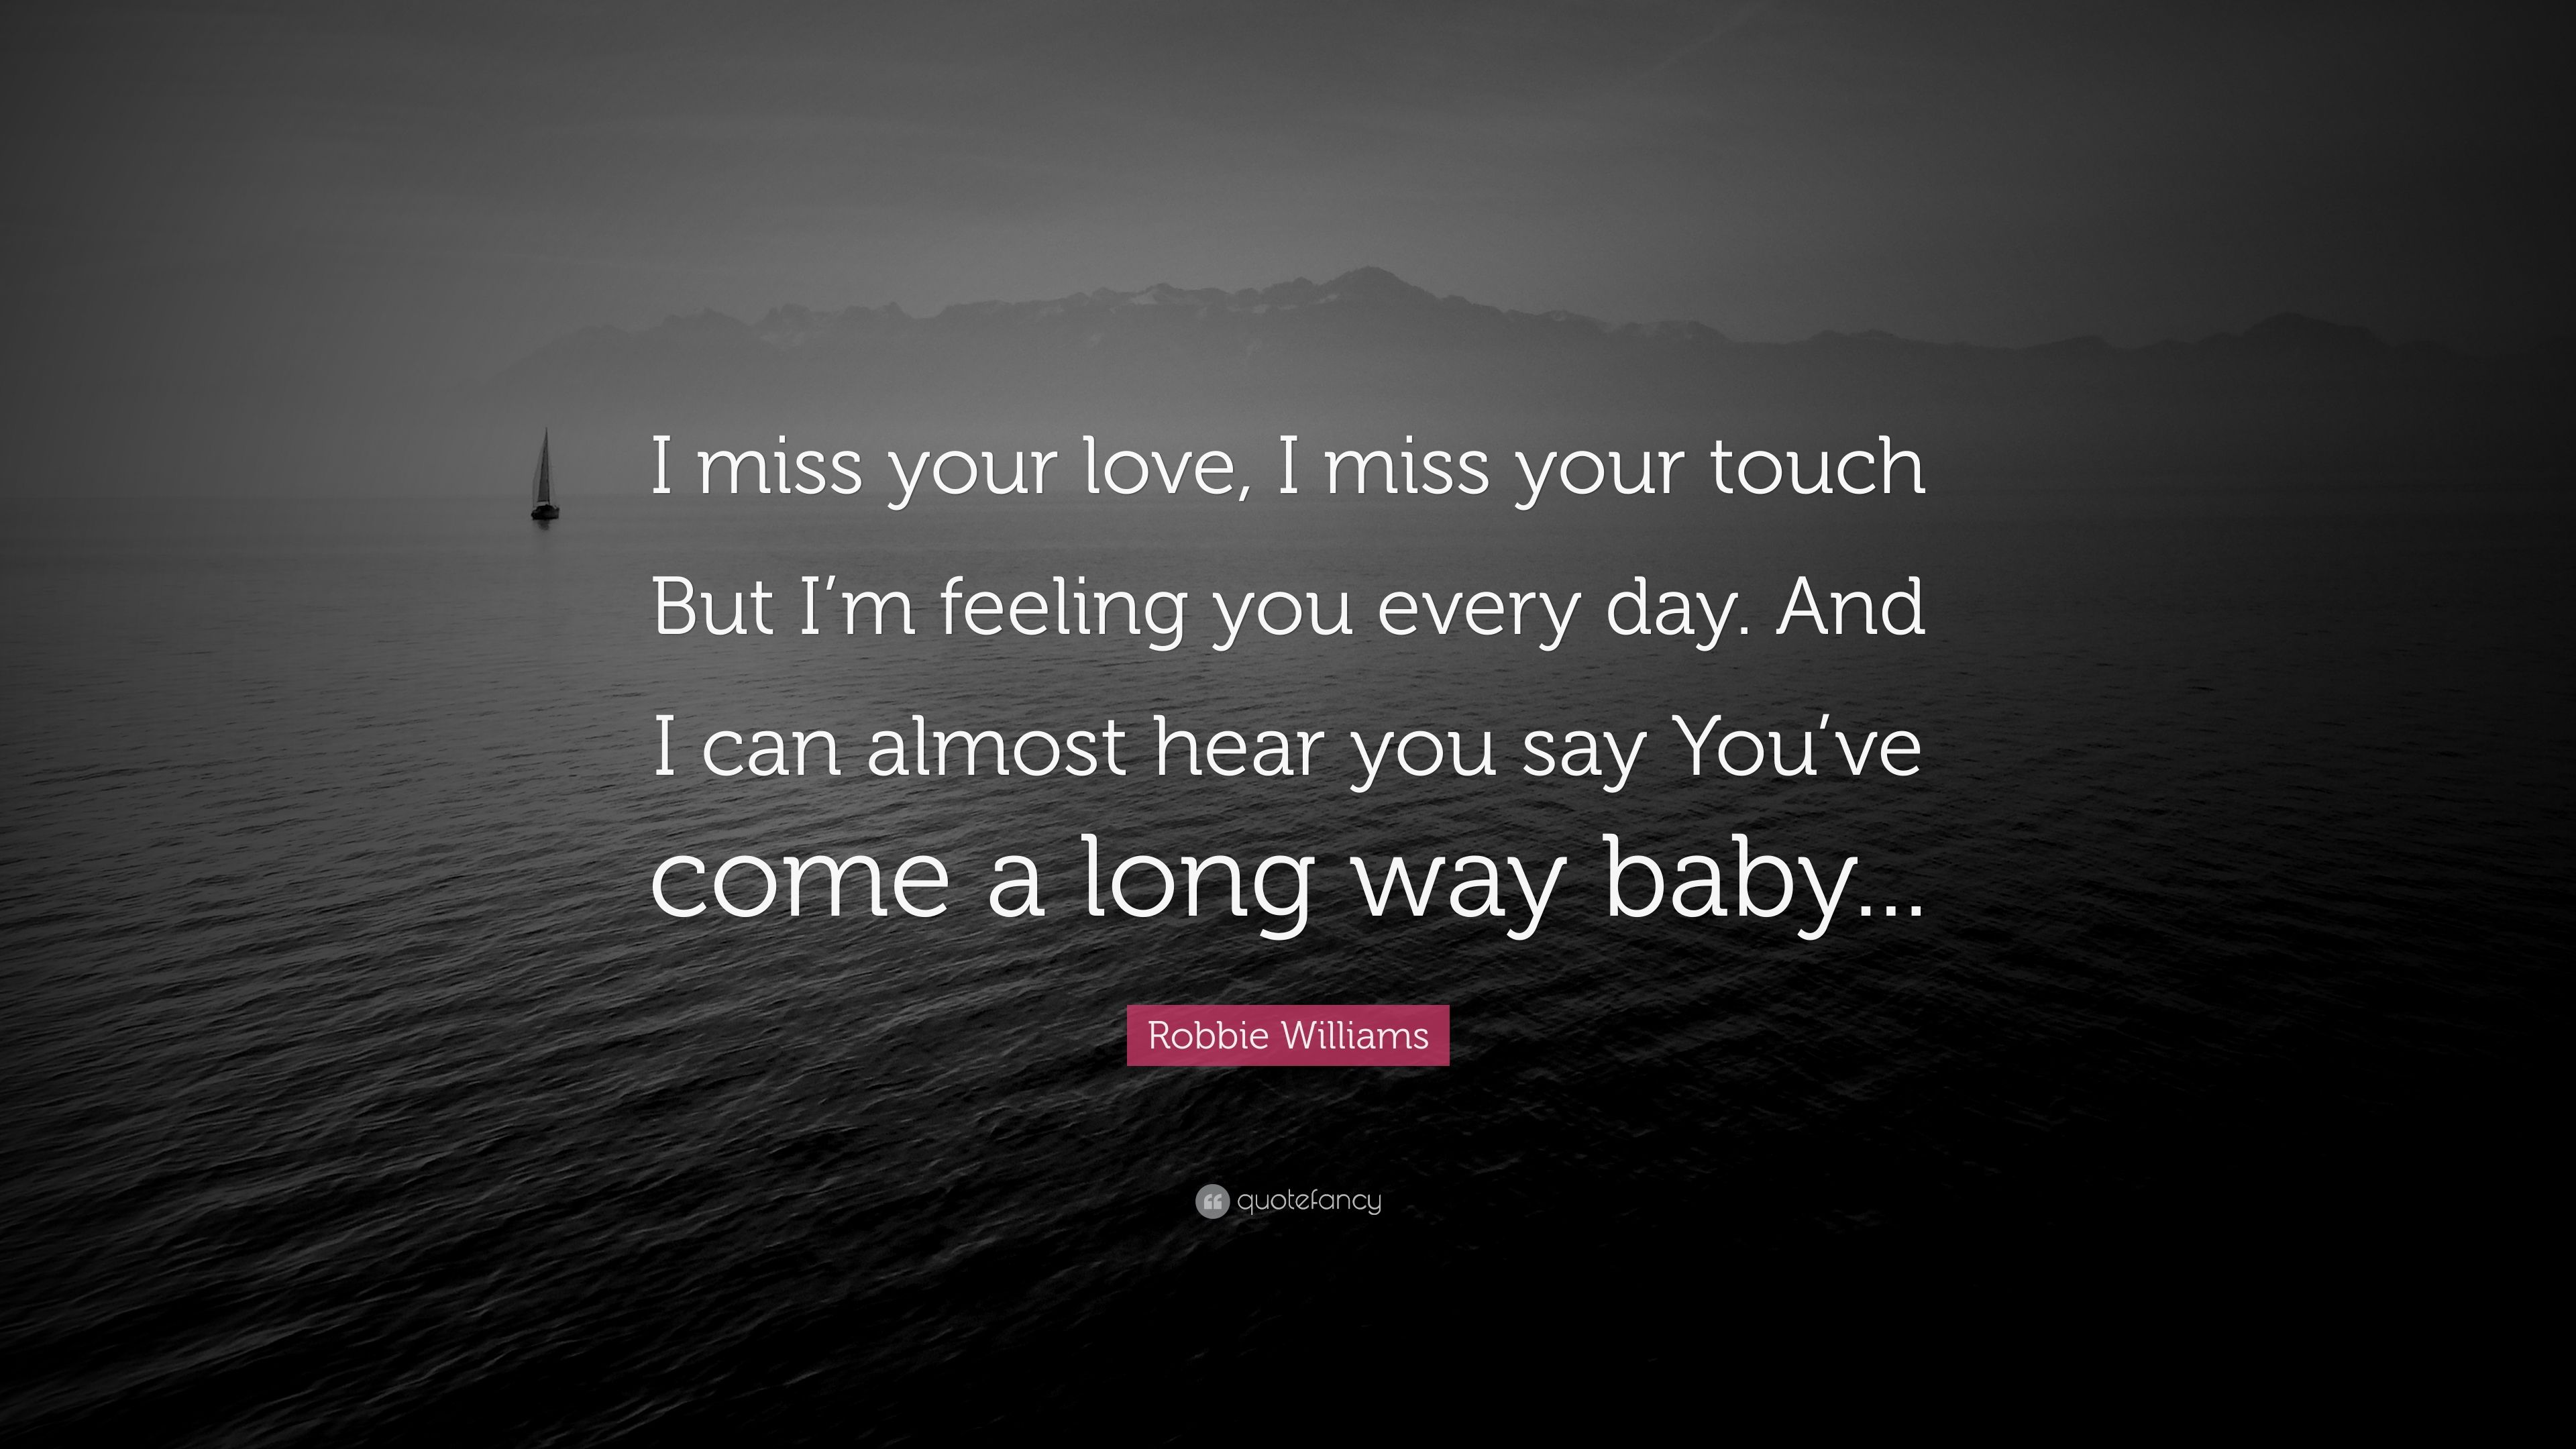 robbie williams quote i miss your love i miss your touch but i